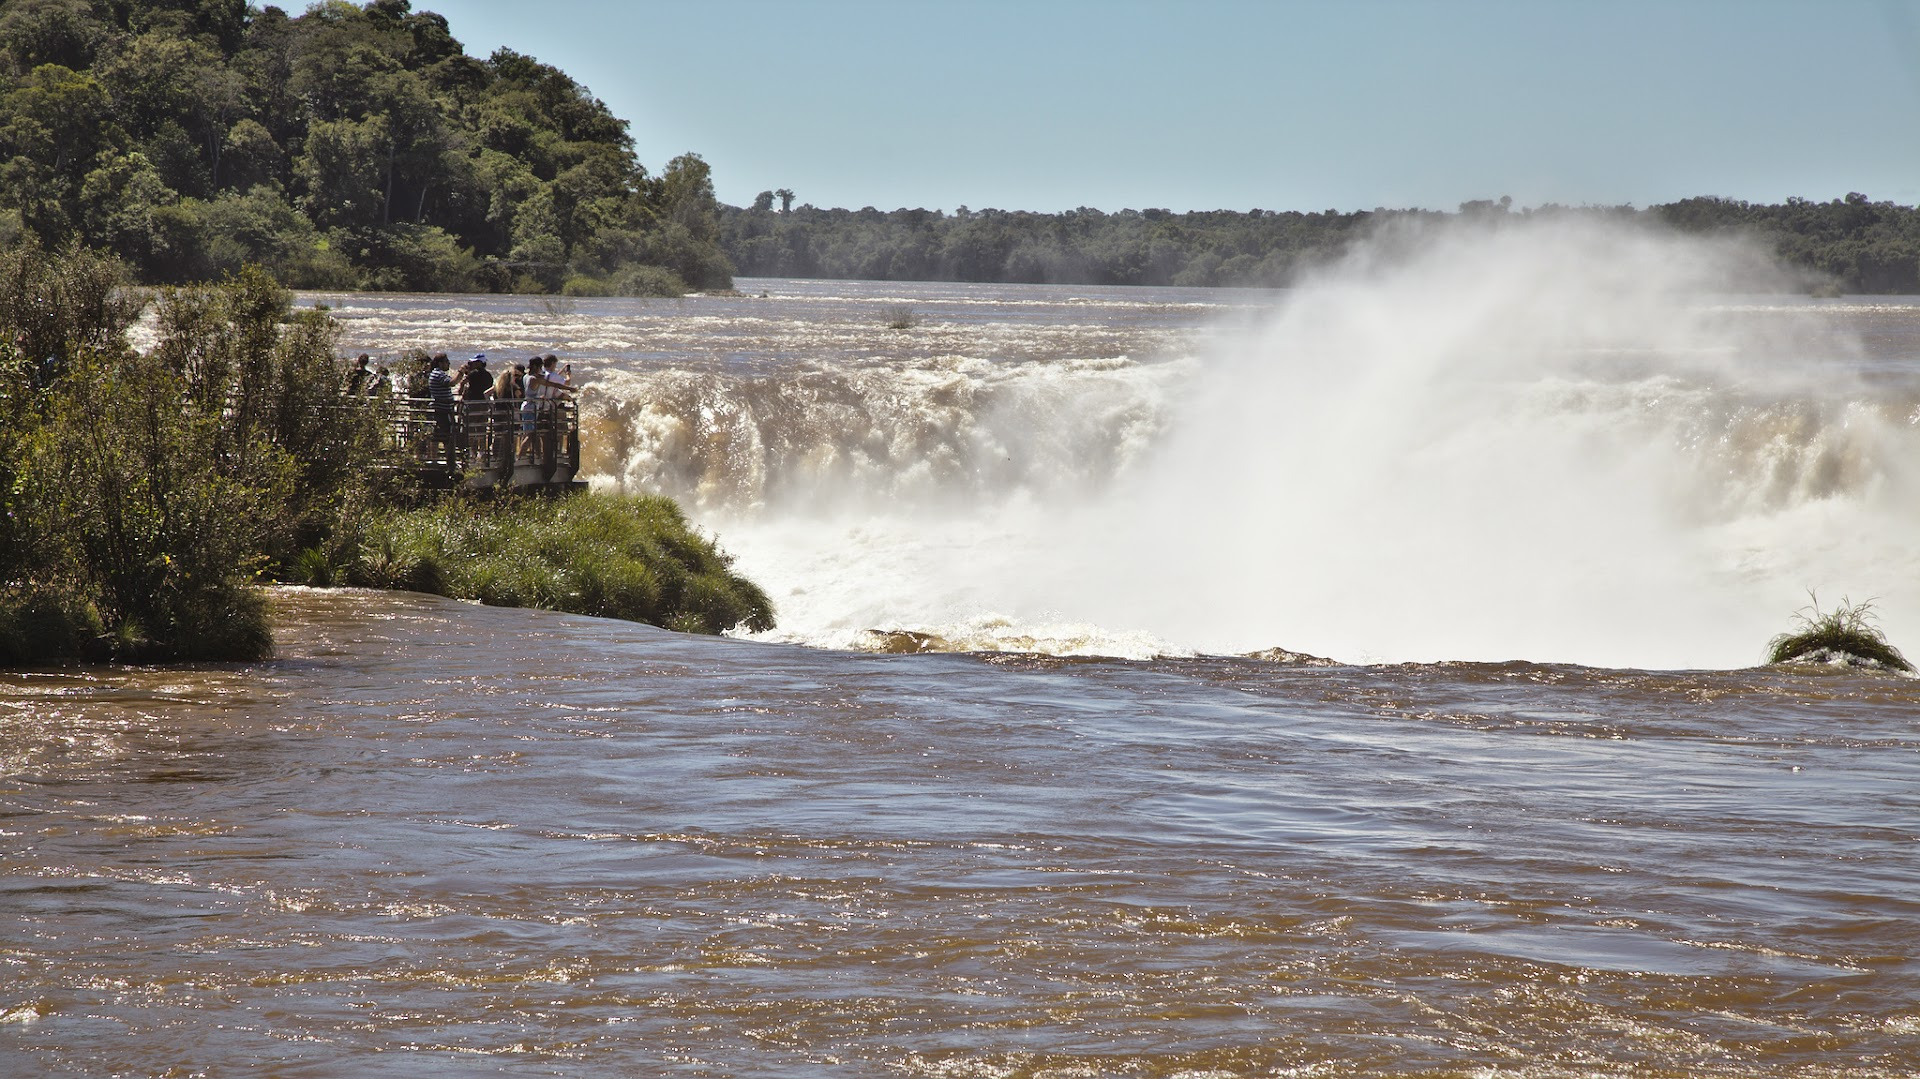 First glimpse of Iguazu falls, actually from Argentine side :-)